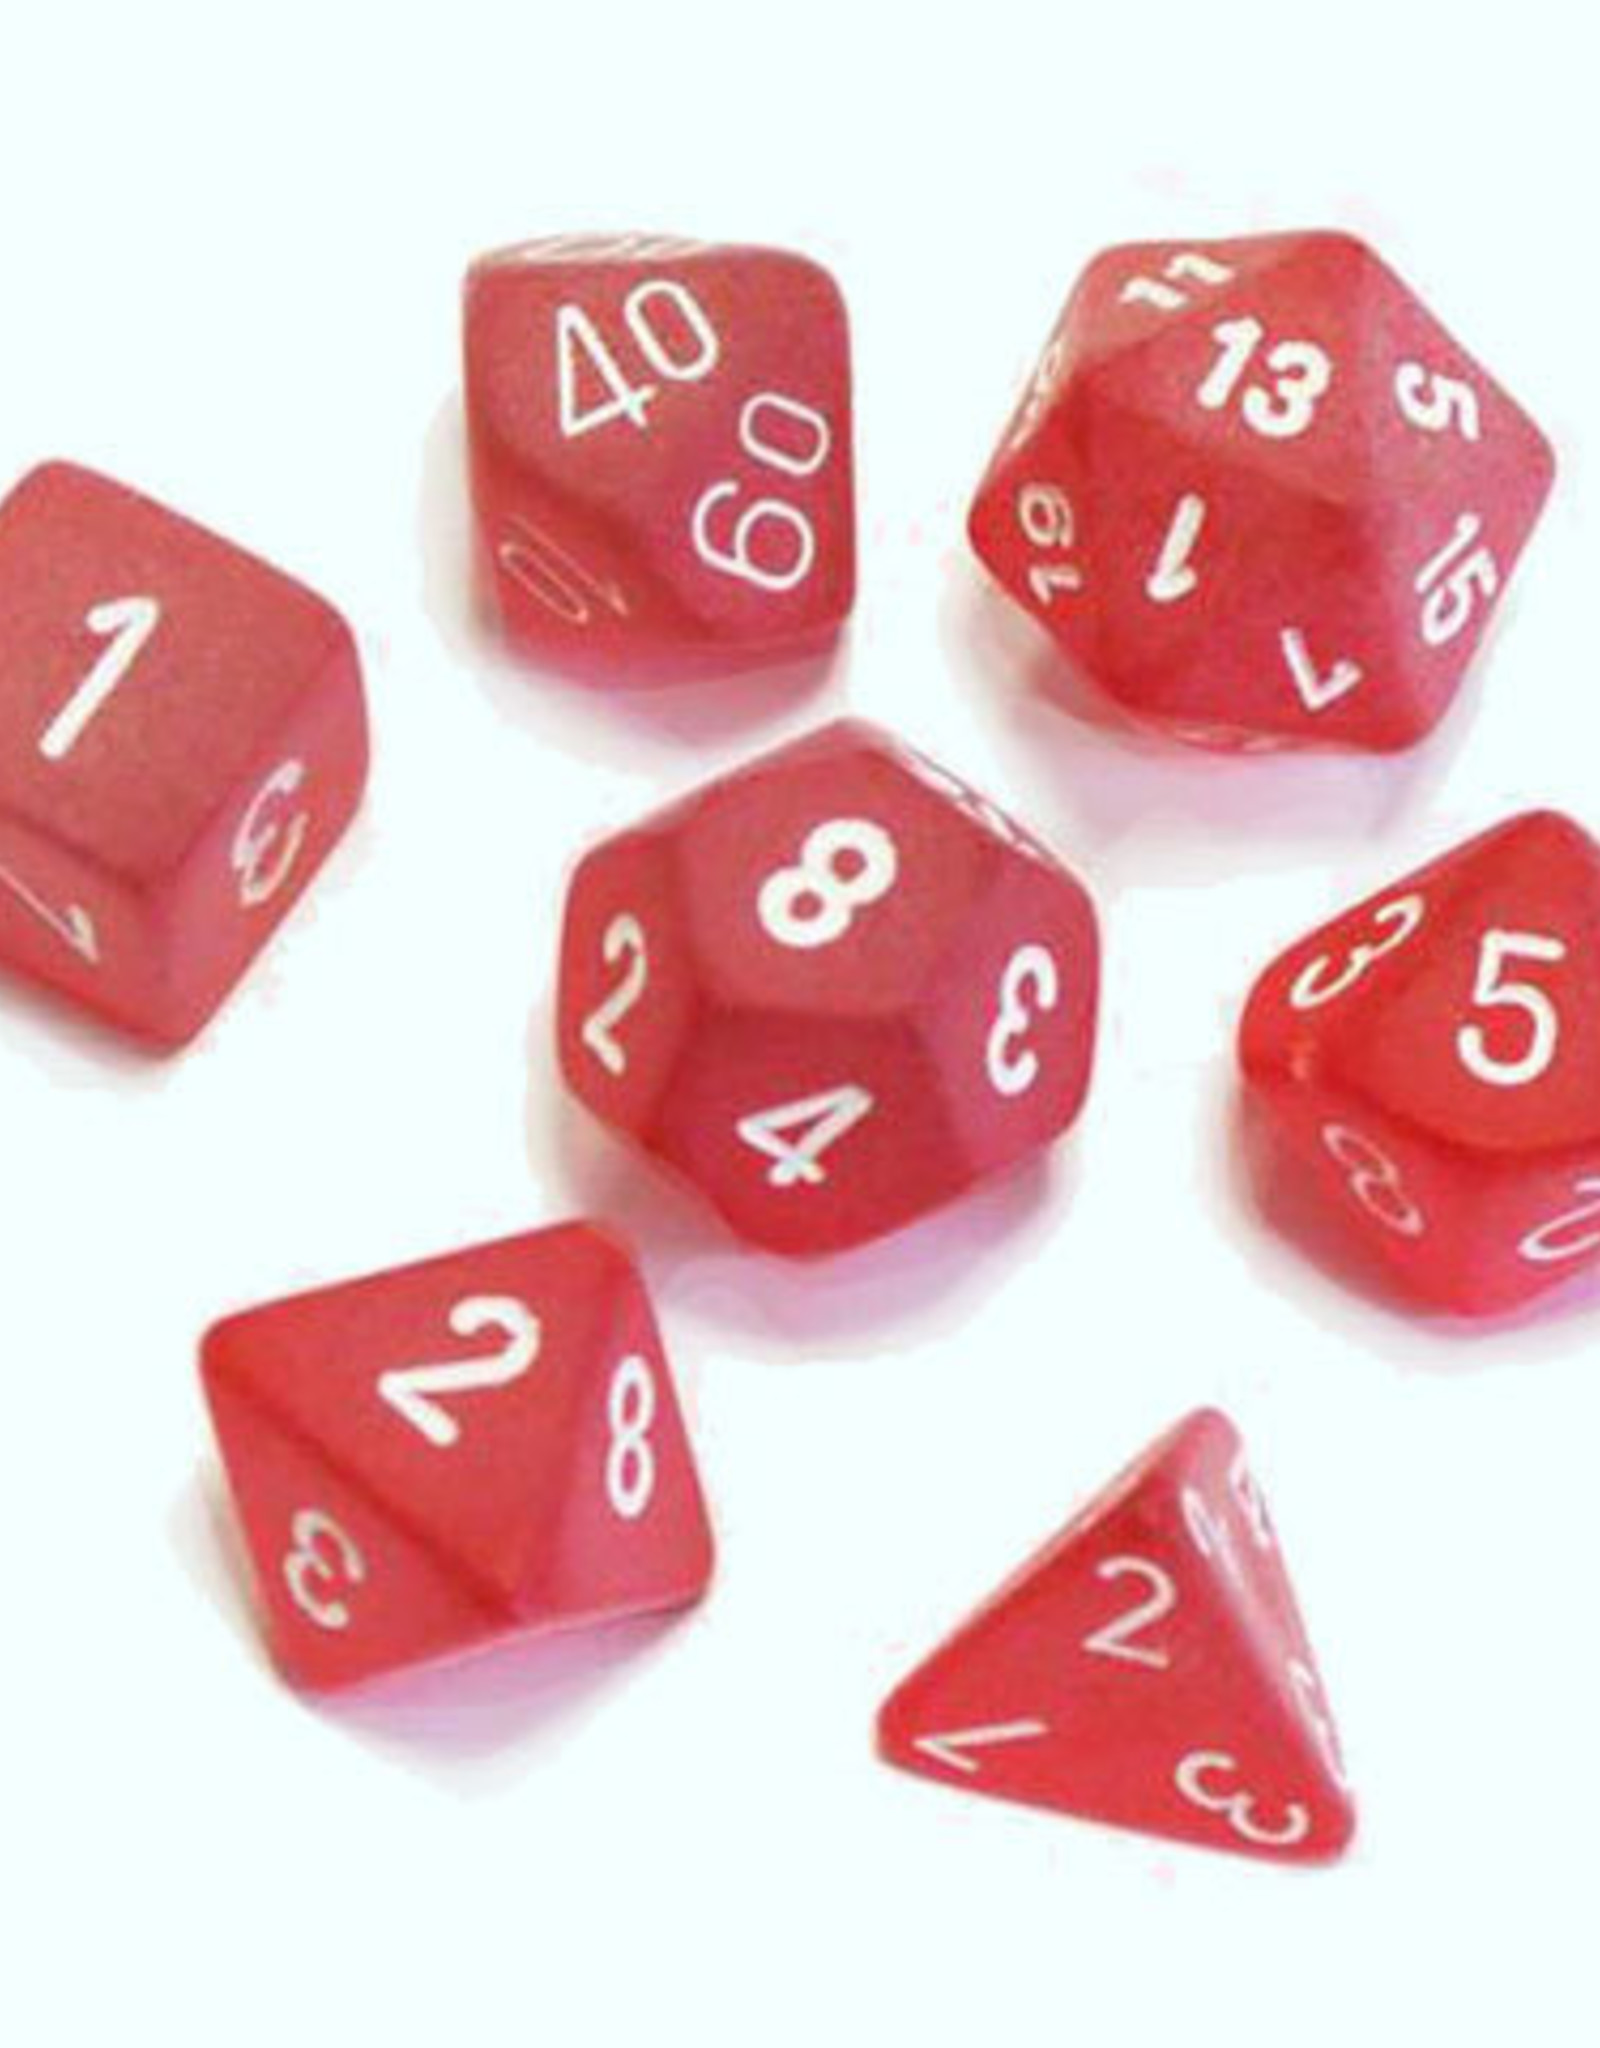 Chessex Chessex 7-Die set Frosted - Red/White